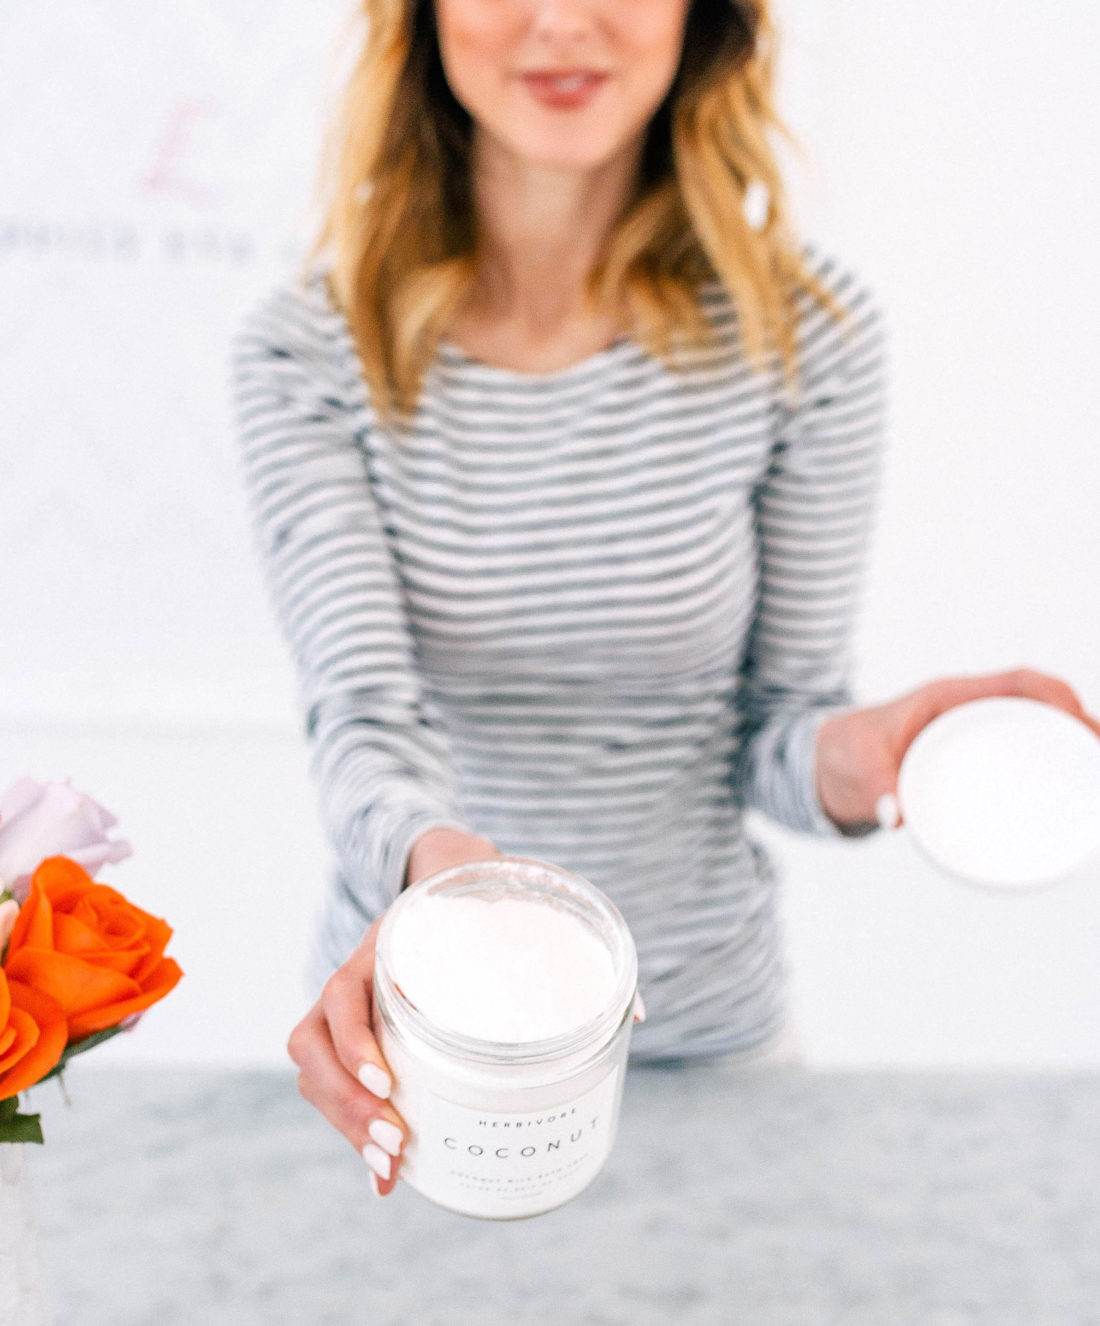 Eva Amurri Martino shows off her coconut milk bath soak that she's been loving for April